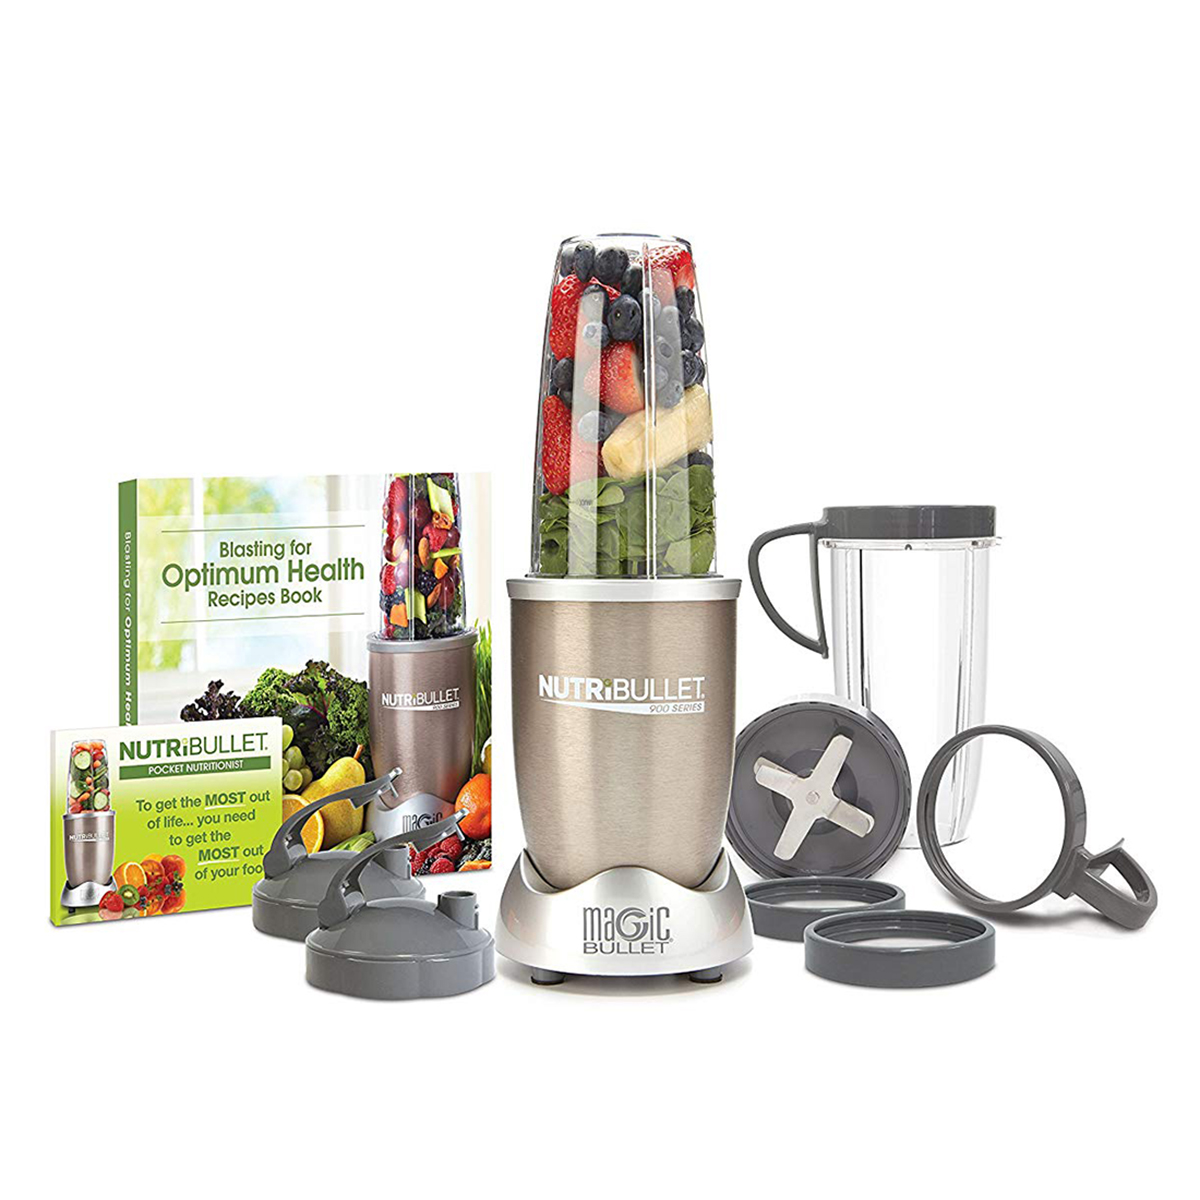 NutriBullet Pro 13-Piece High-Speed Blender System